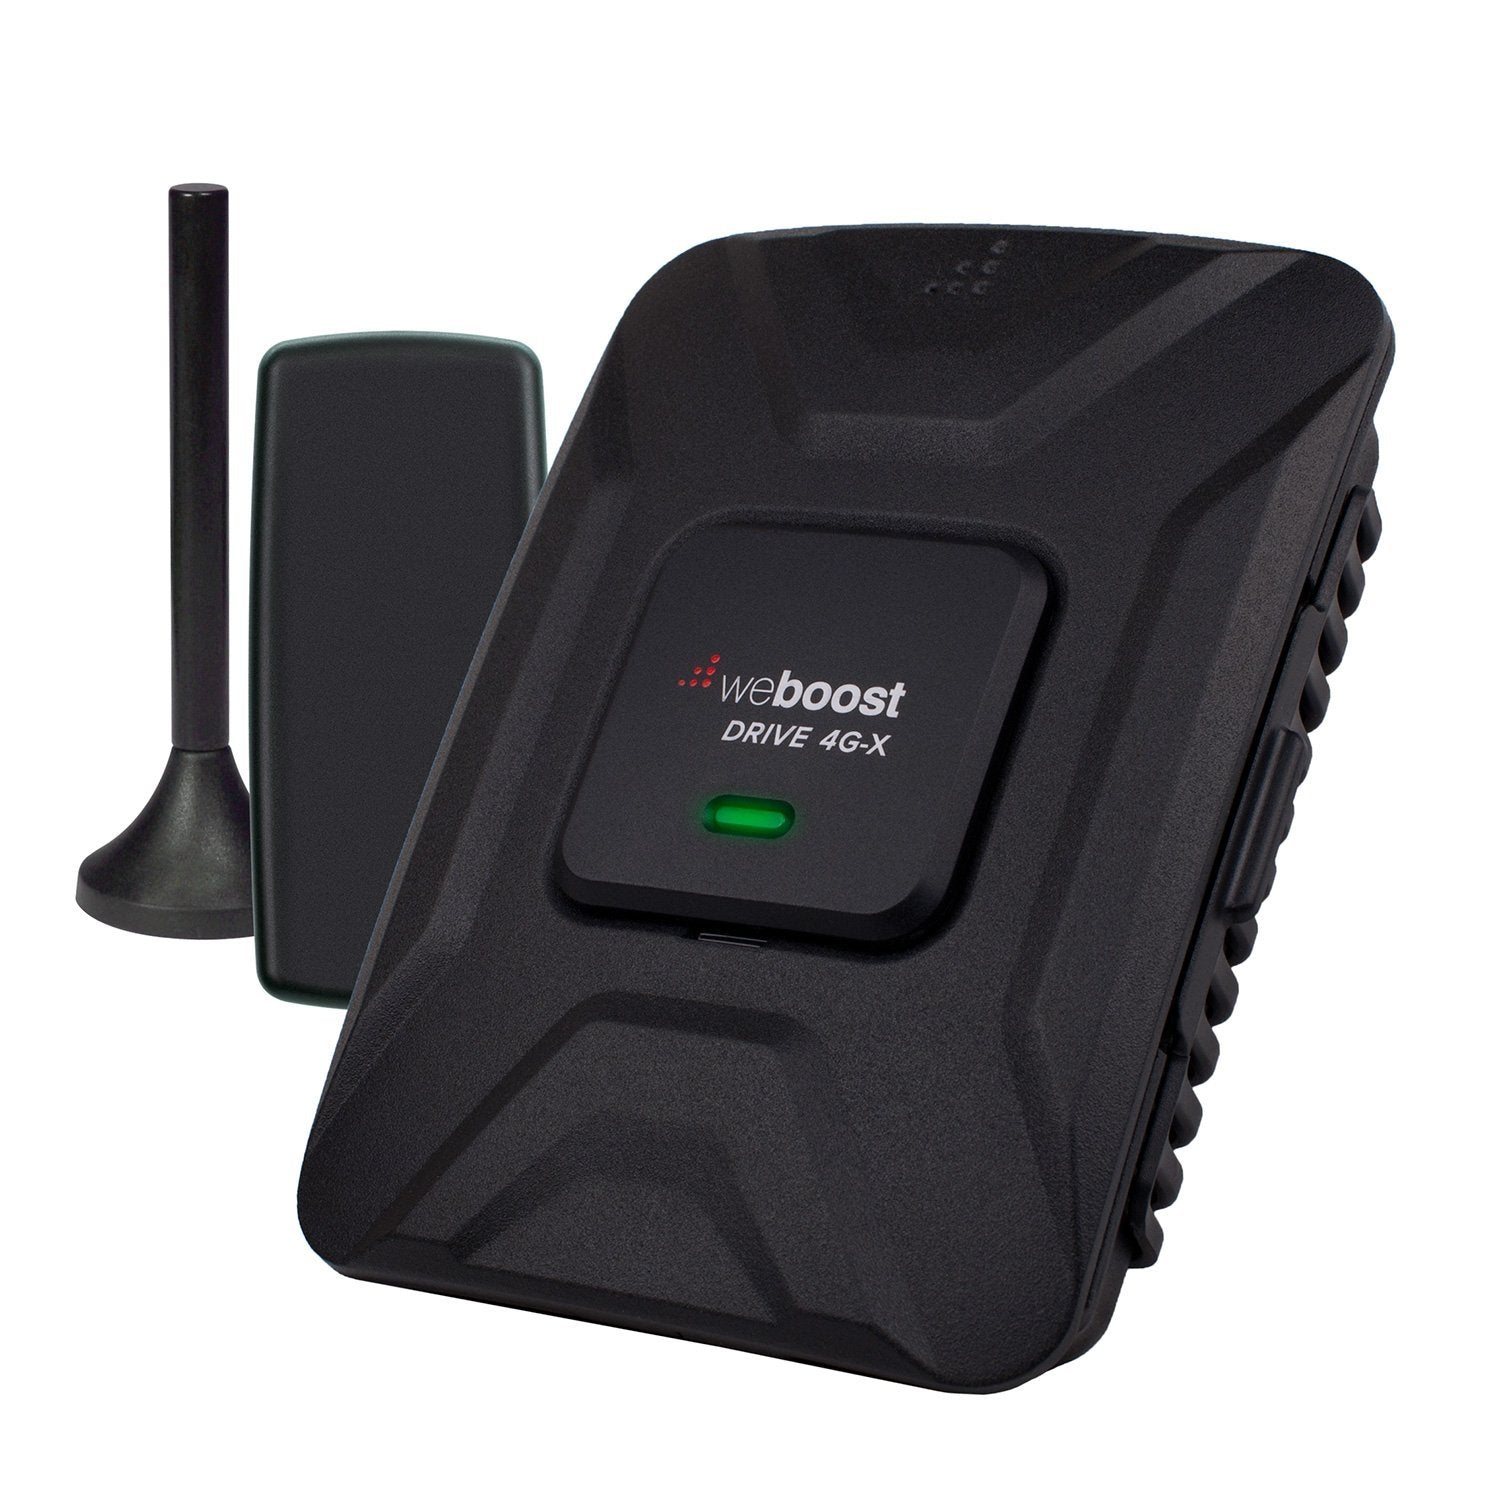 WeBoost 4GX Cellular Booster | Catamaran Supply